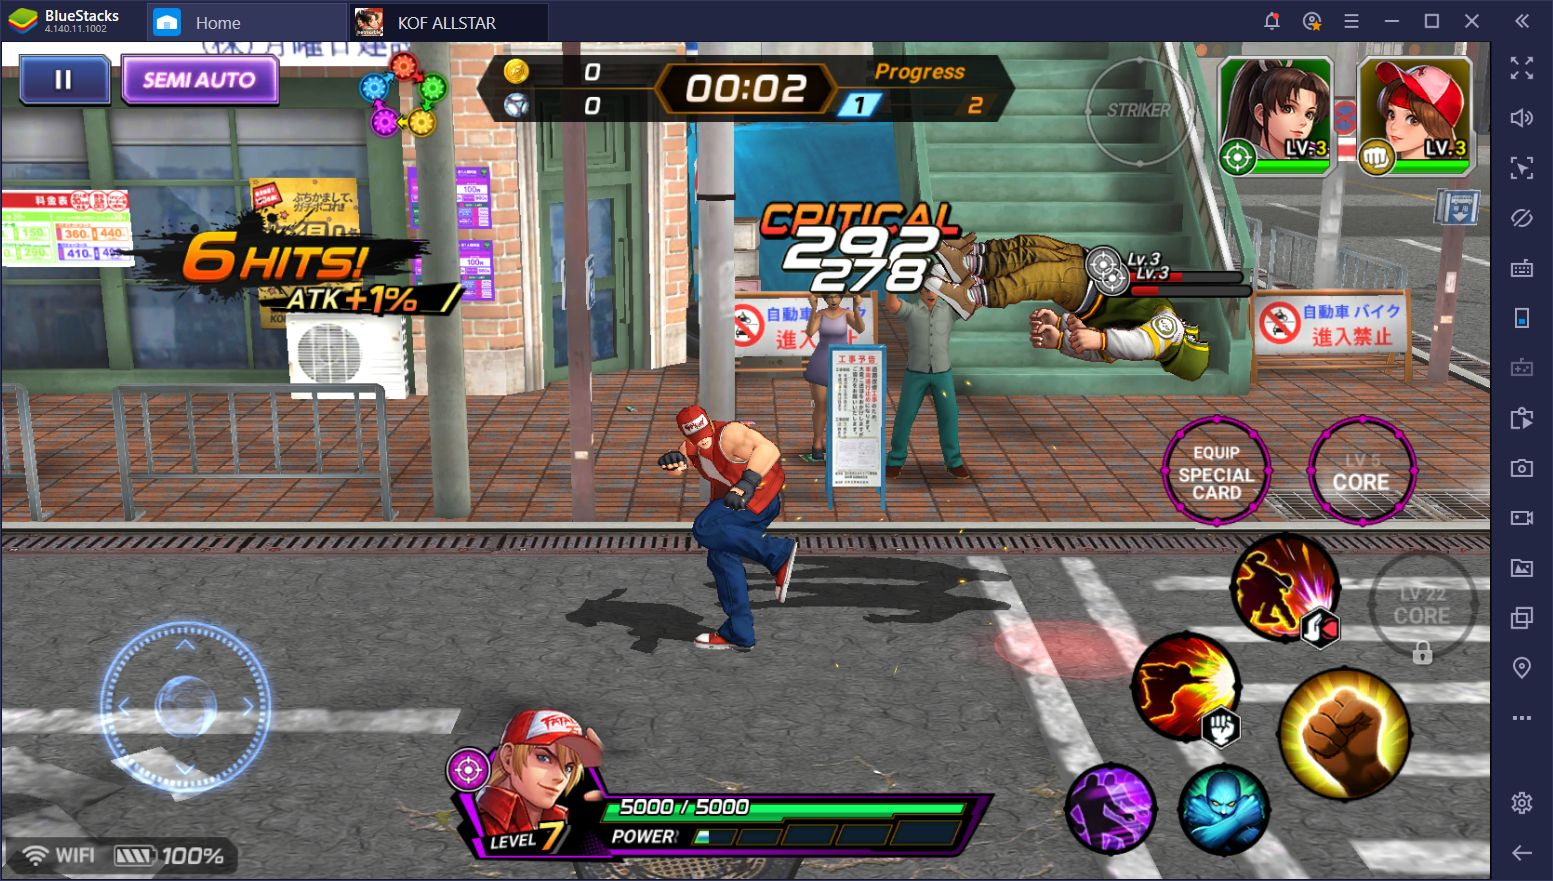 BlueStacks Kullanarak King of Fighters ALLSTAR PC'den Oynamak